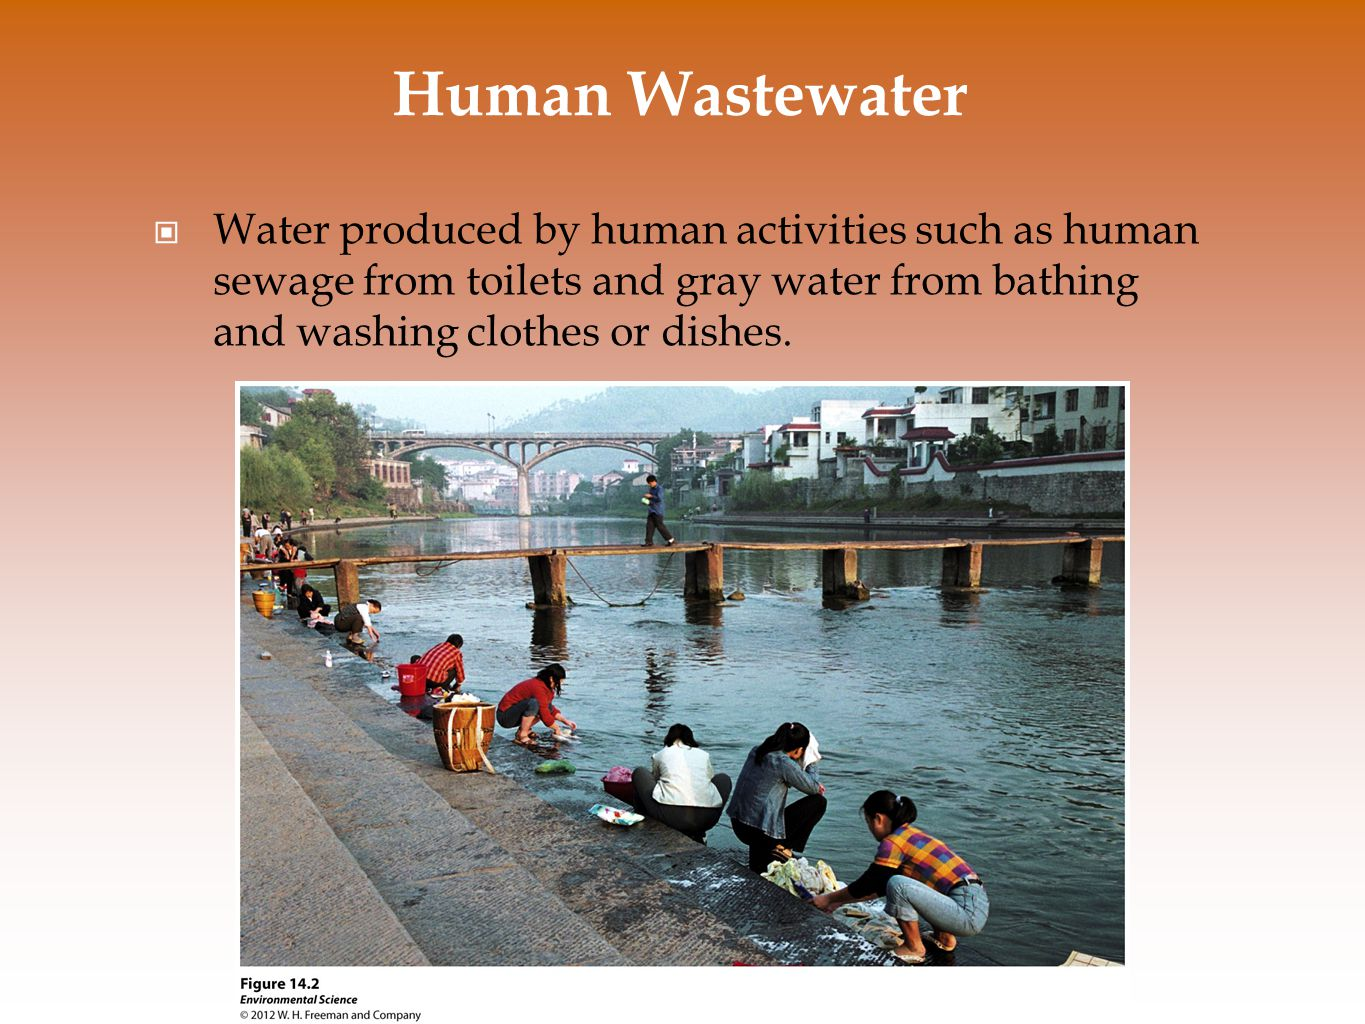 Human Wastewater Water produced by human activities such as human sewage from toilets and gray water from bathing and washing clothes or dishes.